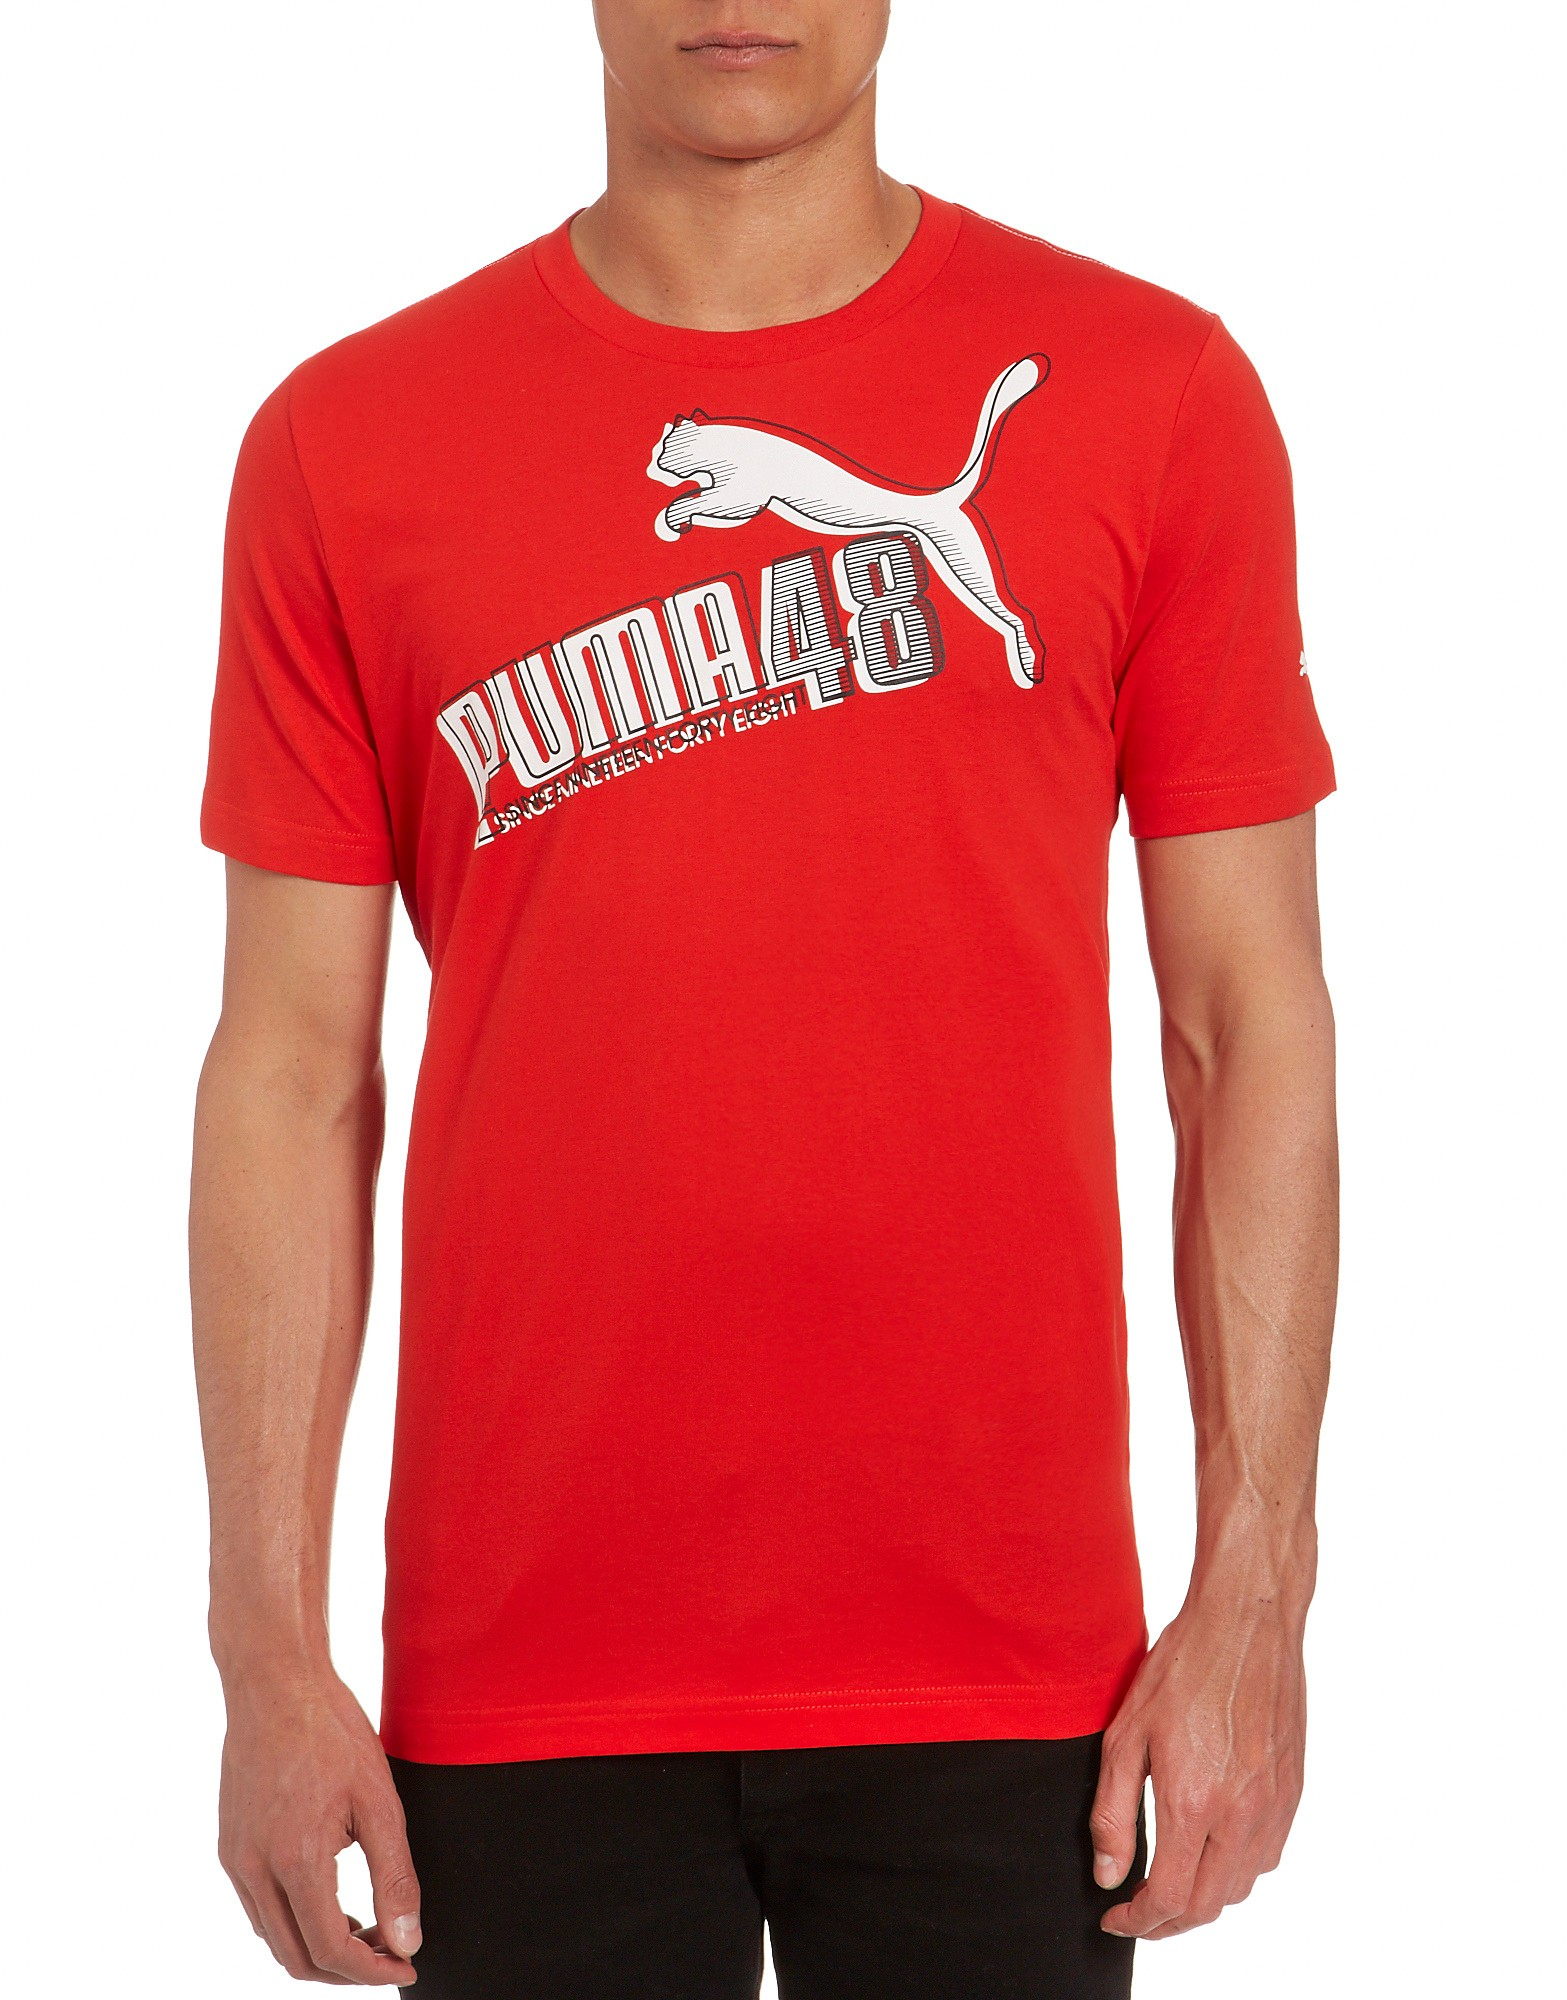 Puma Sketch T-Shirt product image